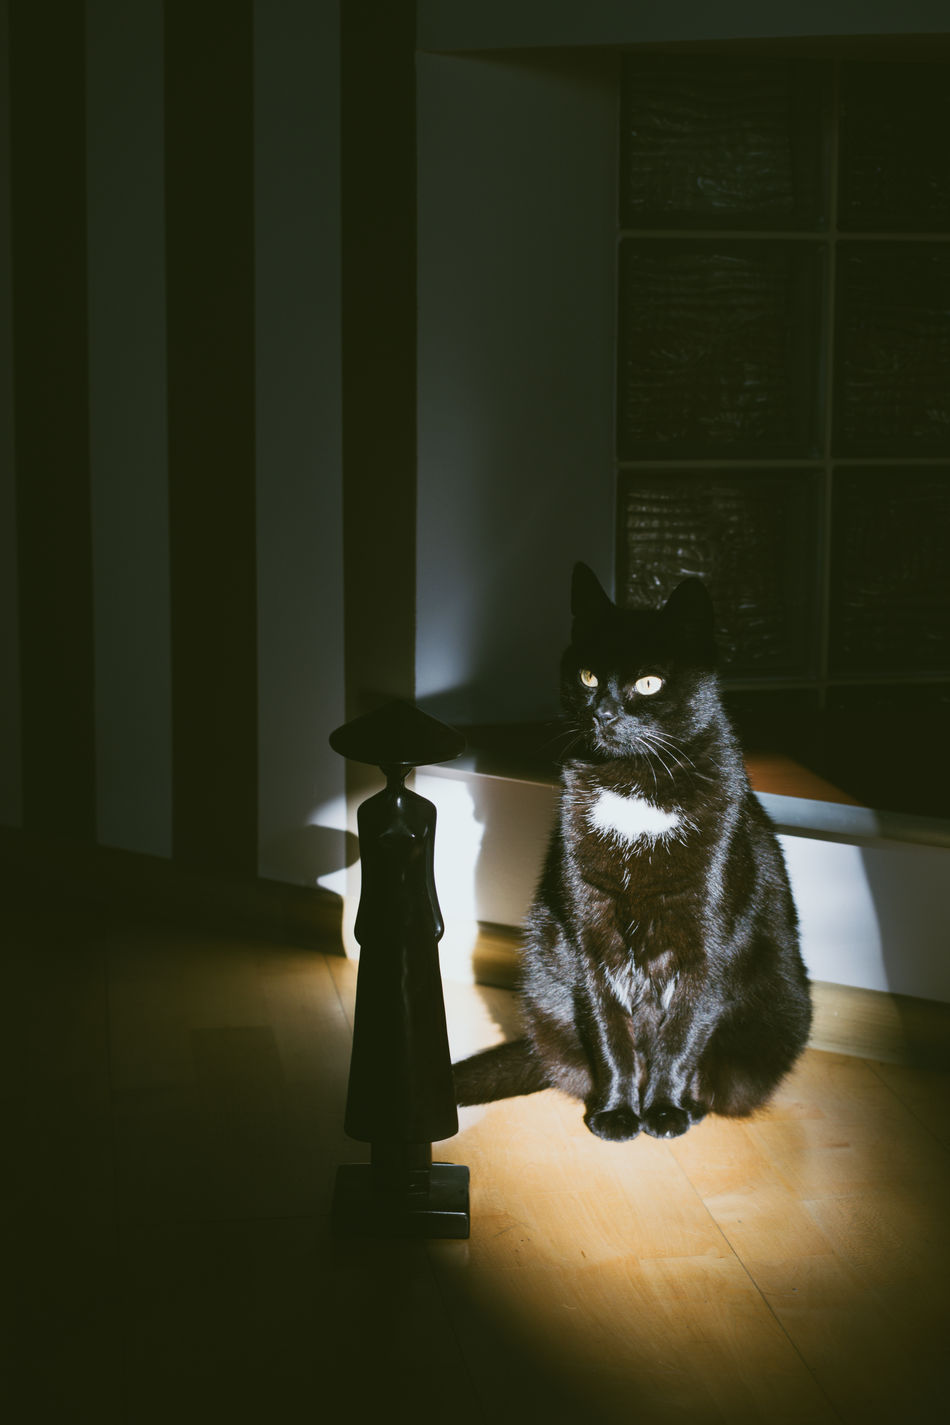 New spots, new perspectives - new home Animal Themes At Home Black Cat Black Color Day Domestic Animals Domestic Cat Indoors  No People One Animal Pets Sitting Sunlight Art Is Everywhere